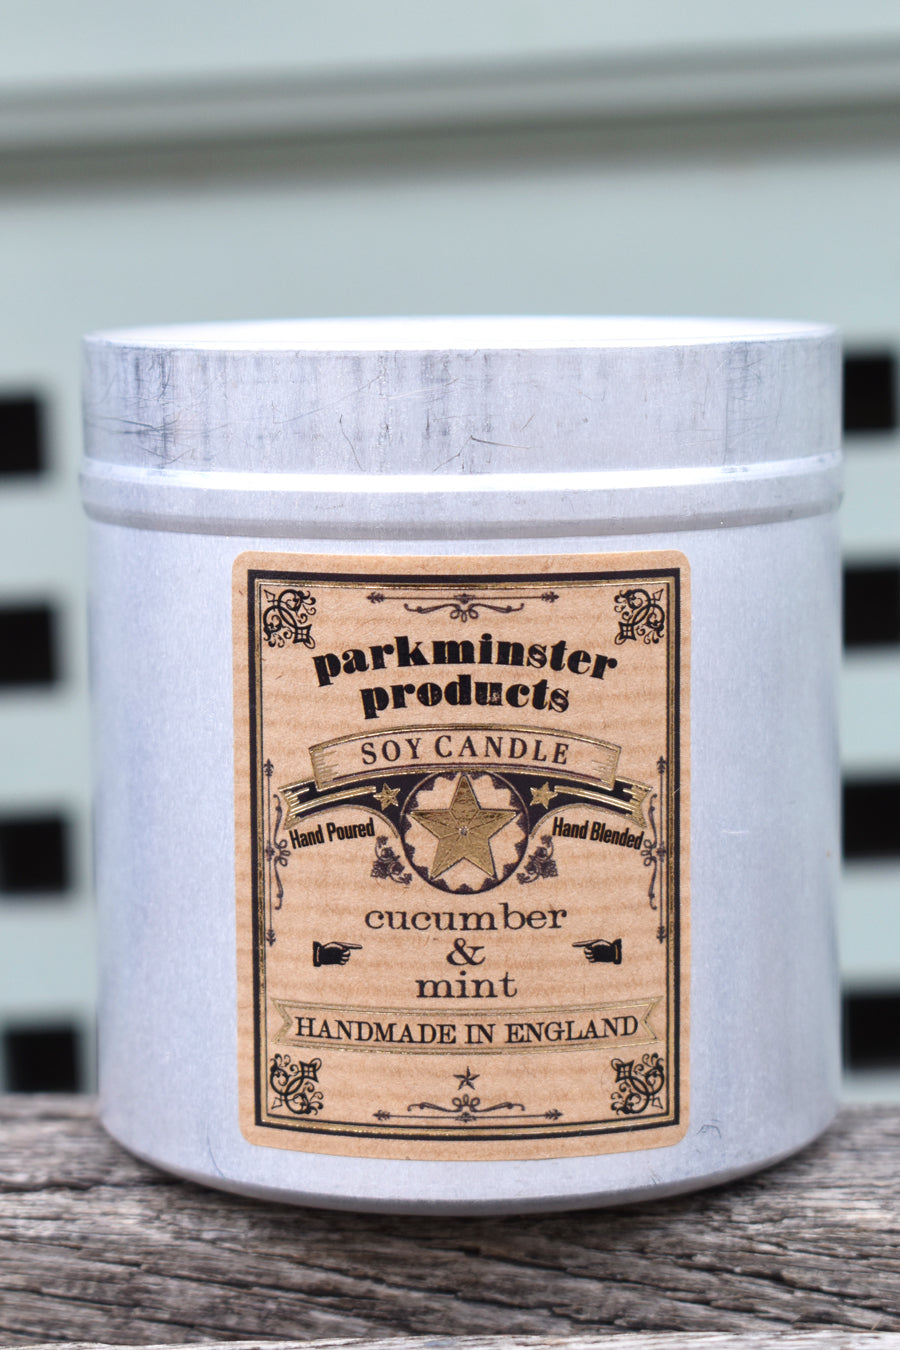 Parkminster Cucumber & Mint Tin Candle - The Mercantile London